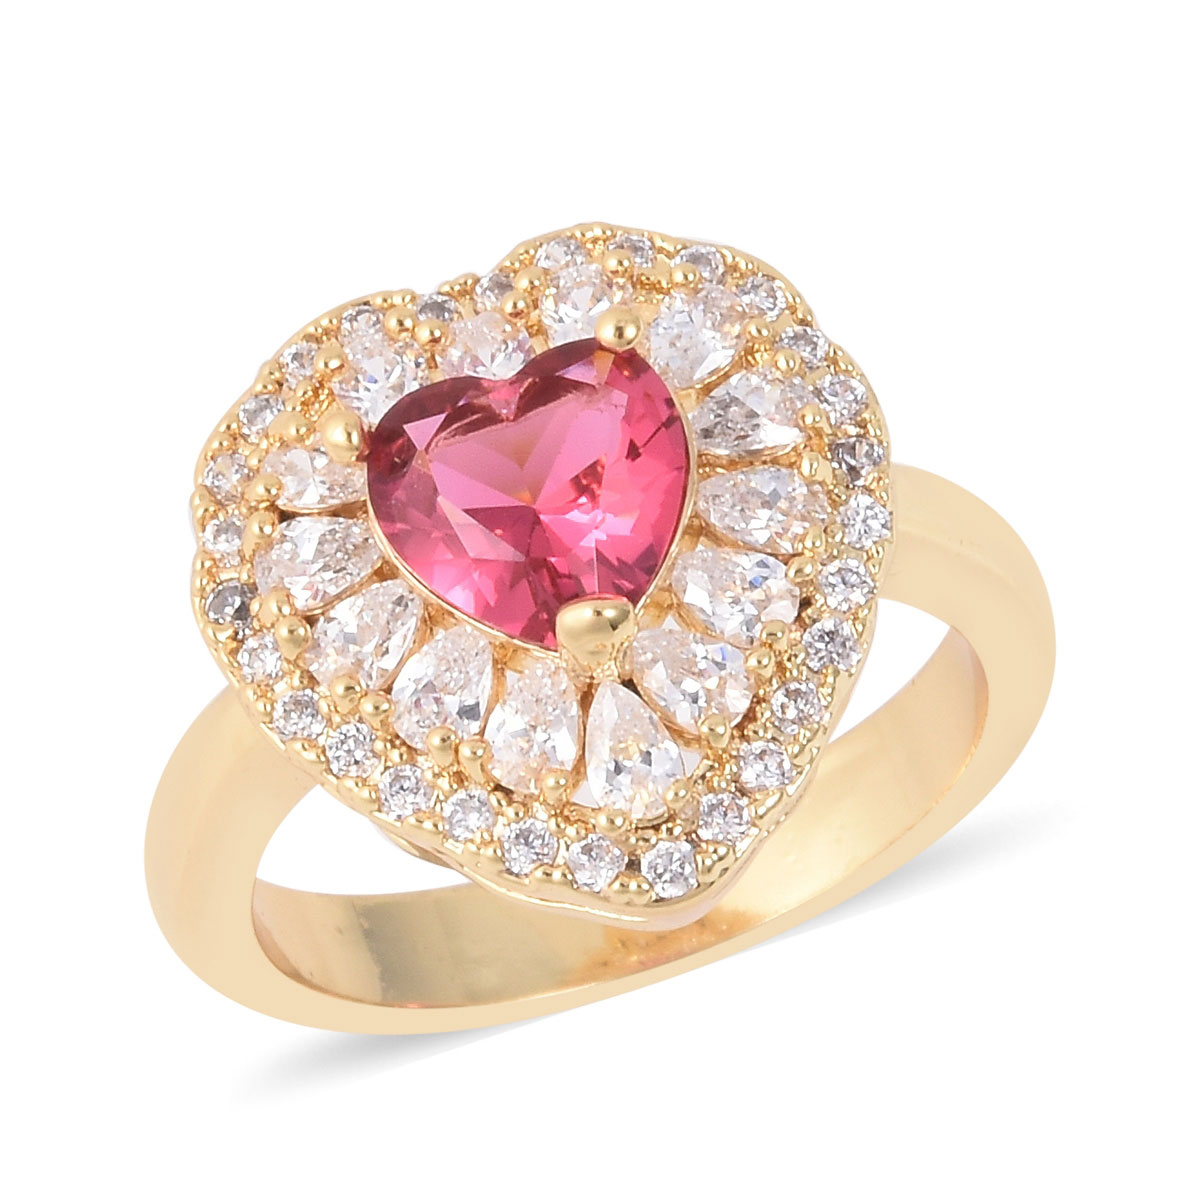 Shop LC Delivering Joy Heart Ring Heart White Cubic Zirconia CZ Silvertone Jewelry for Women Ct 4.8